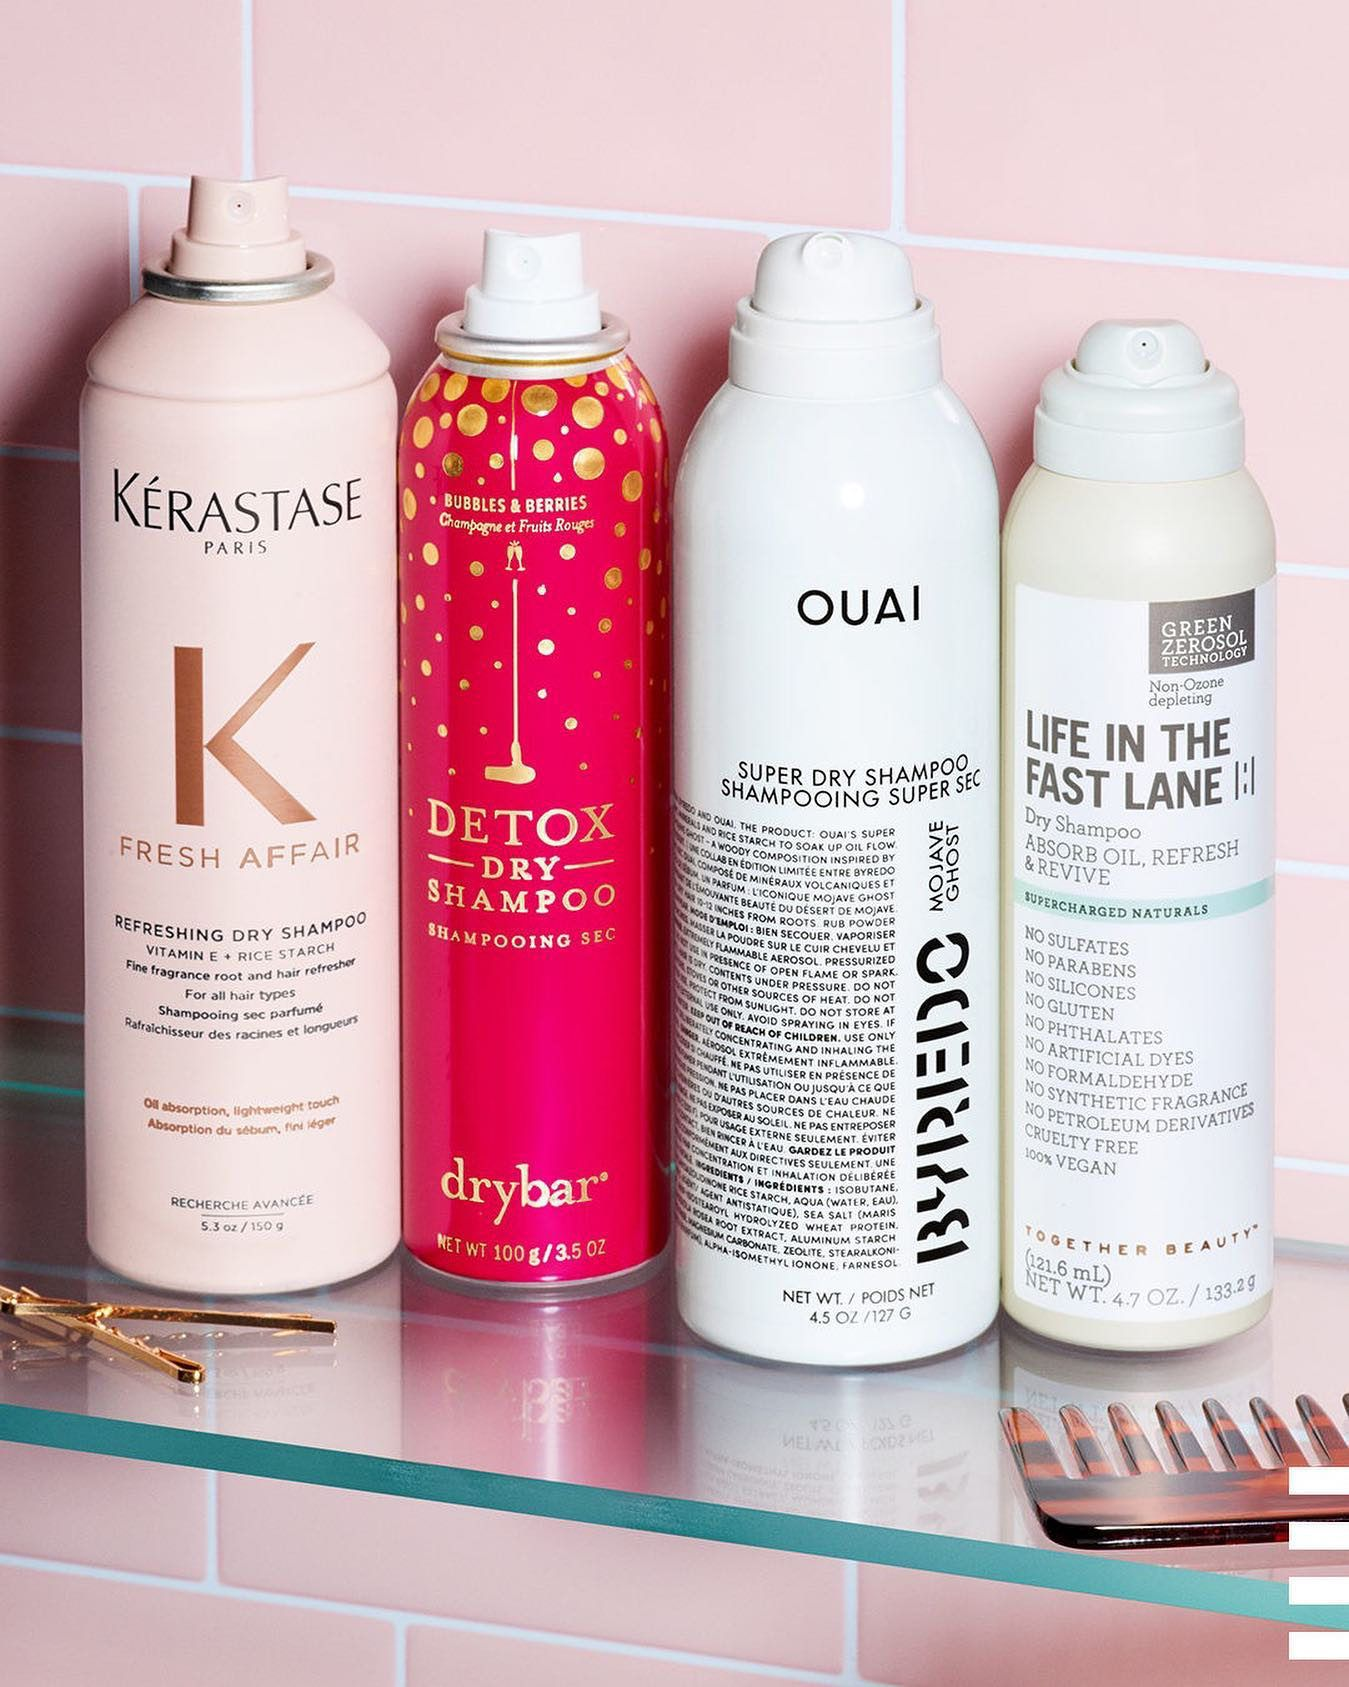 Let S Hear It For All The Dry Shampoos Dry Shampoo Makeup Tools Products Shampoo